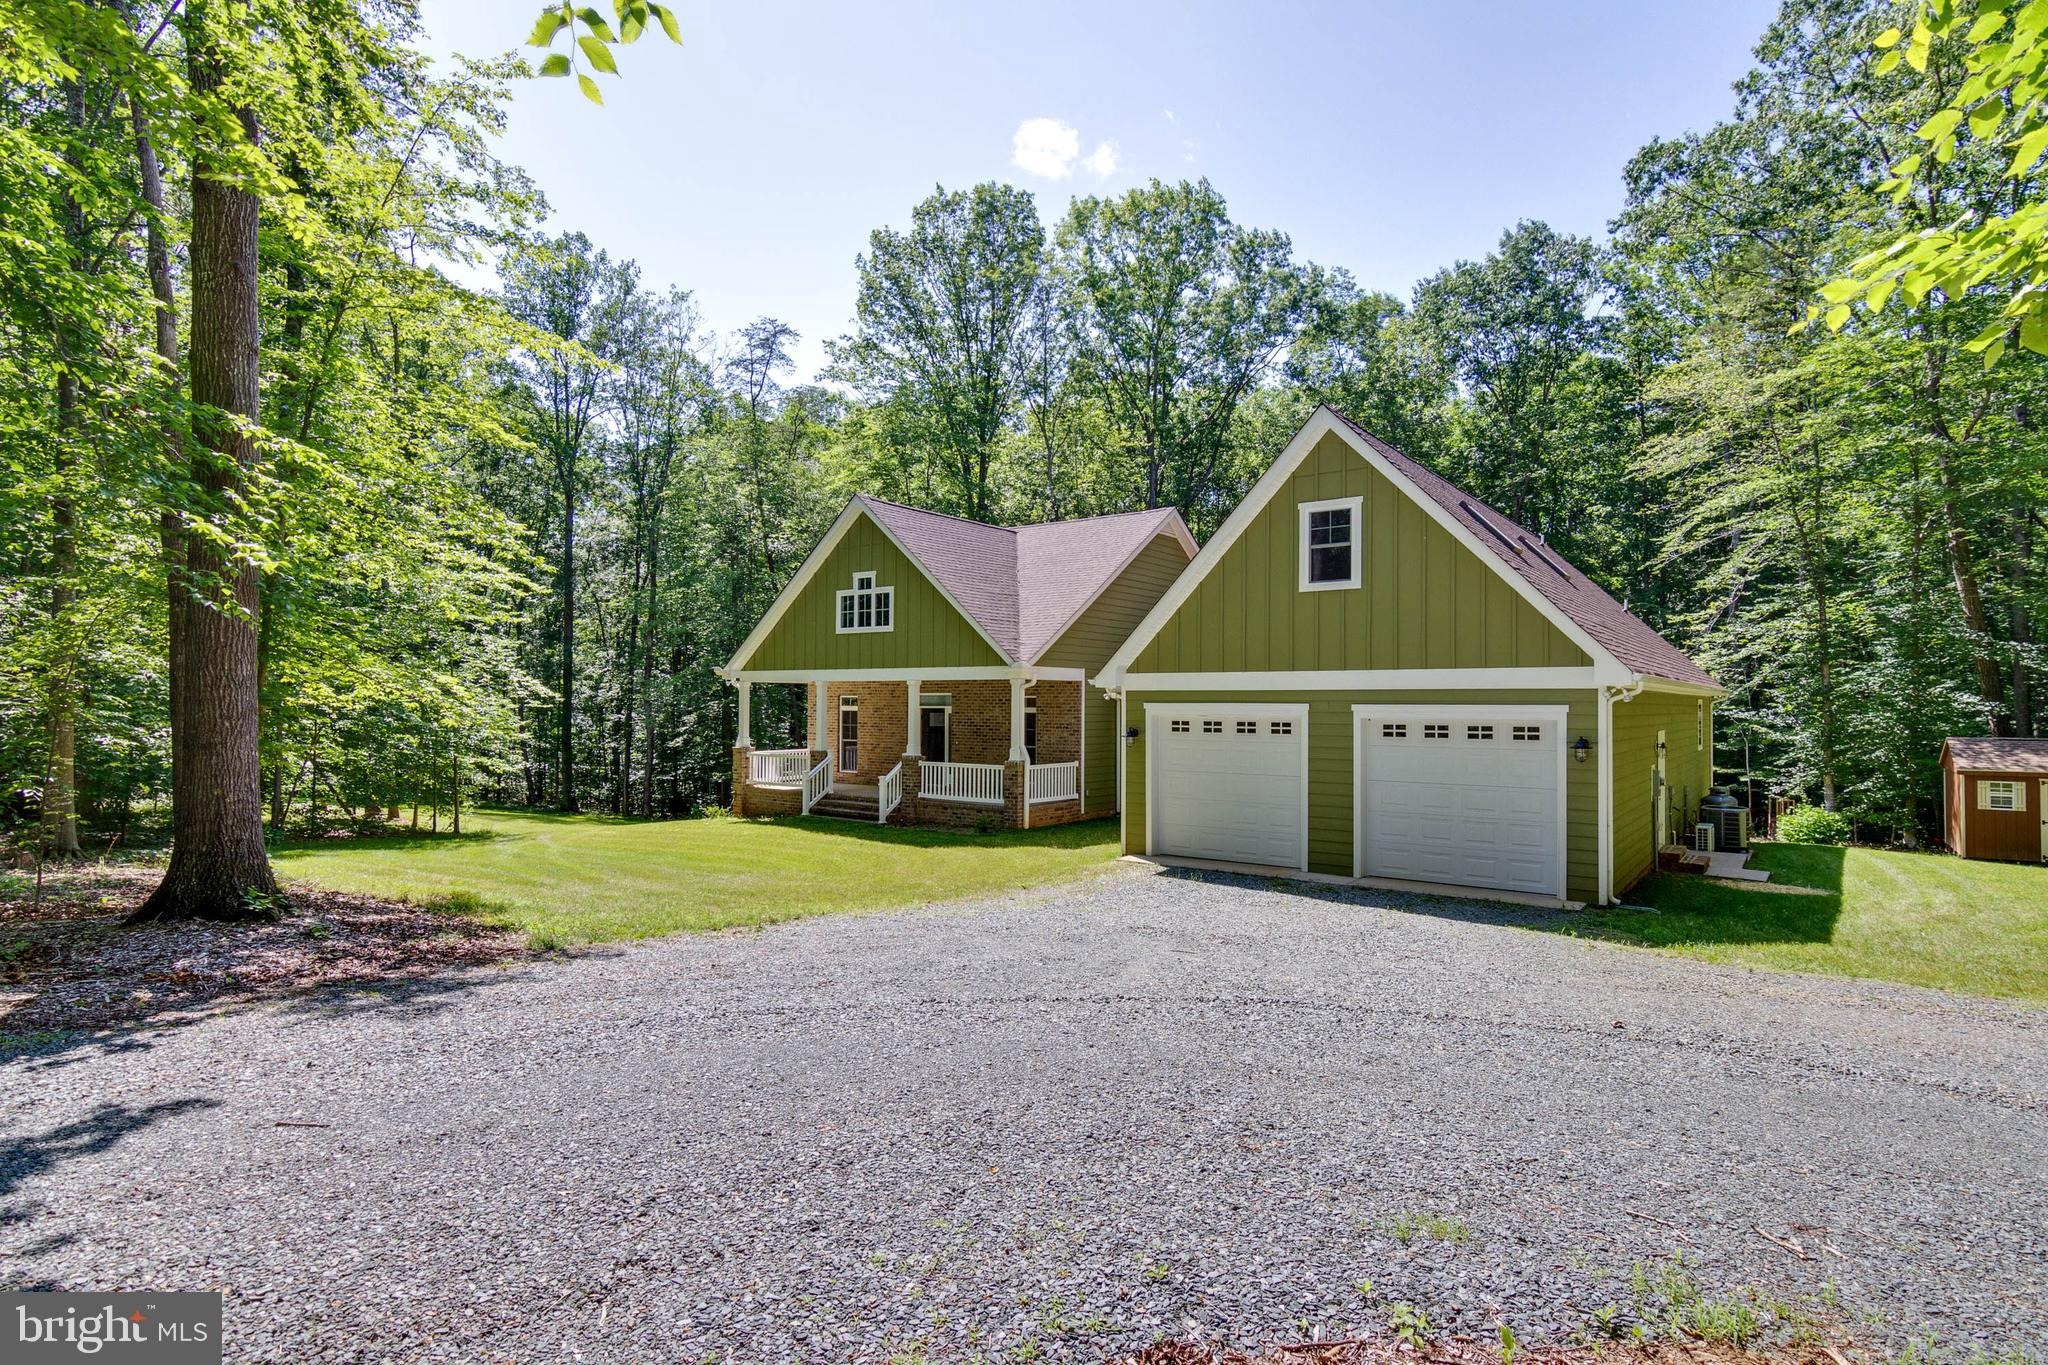 242 BOWLERS MILL LANE, GORDONSVILLE, VA 22942